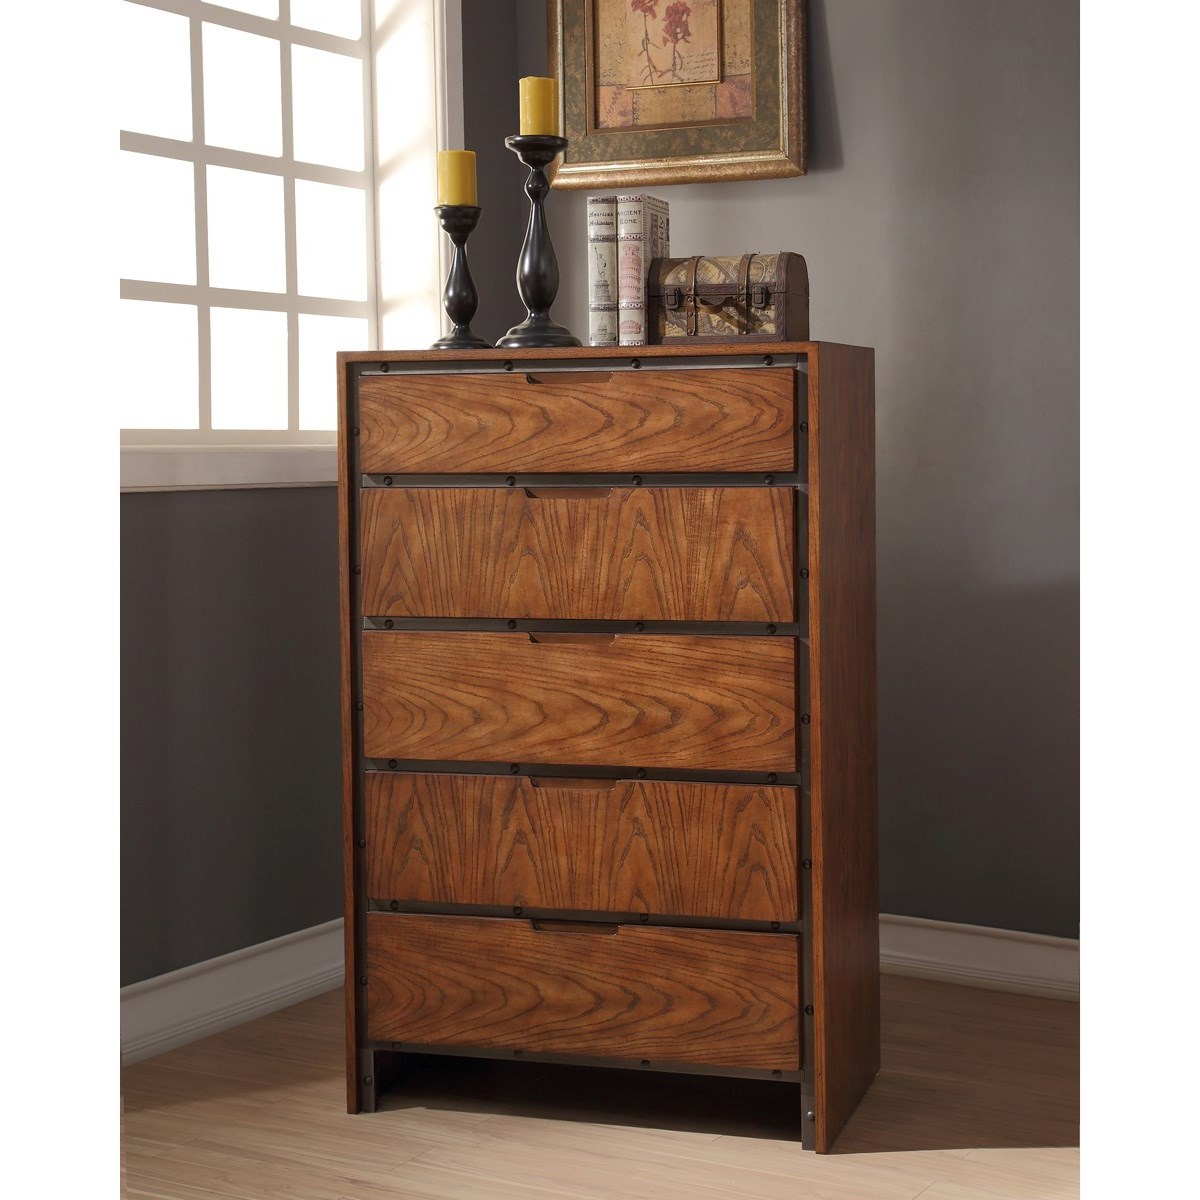 Legends Furniture Crossgrain Collection Crossgrain Chest - Item Number: ZCGN-7016